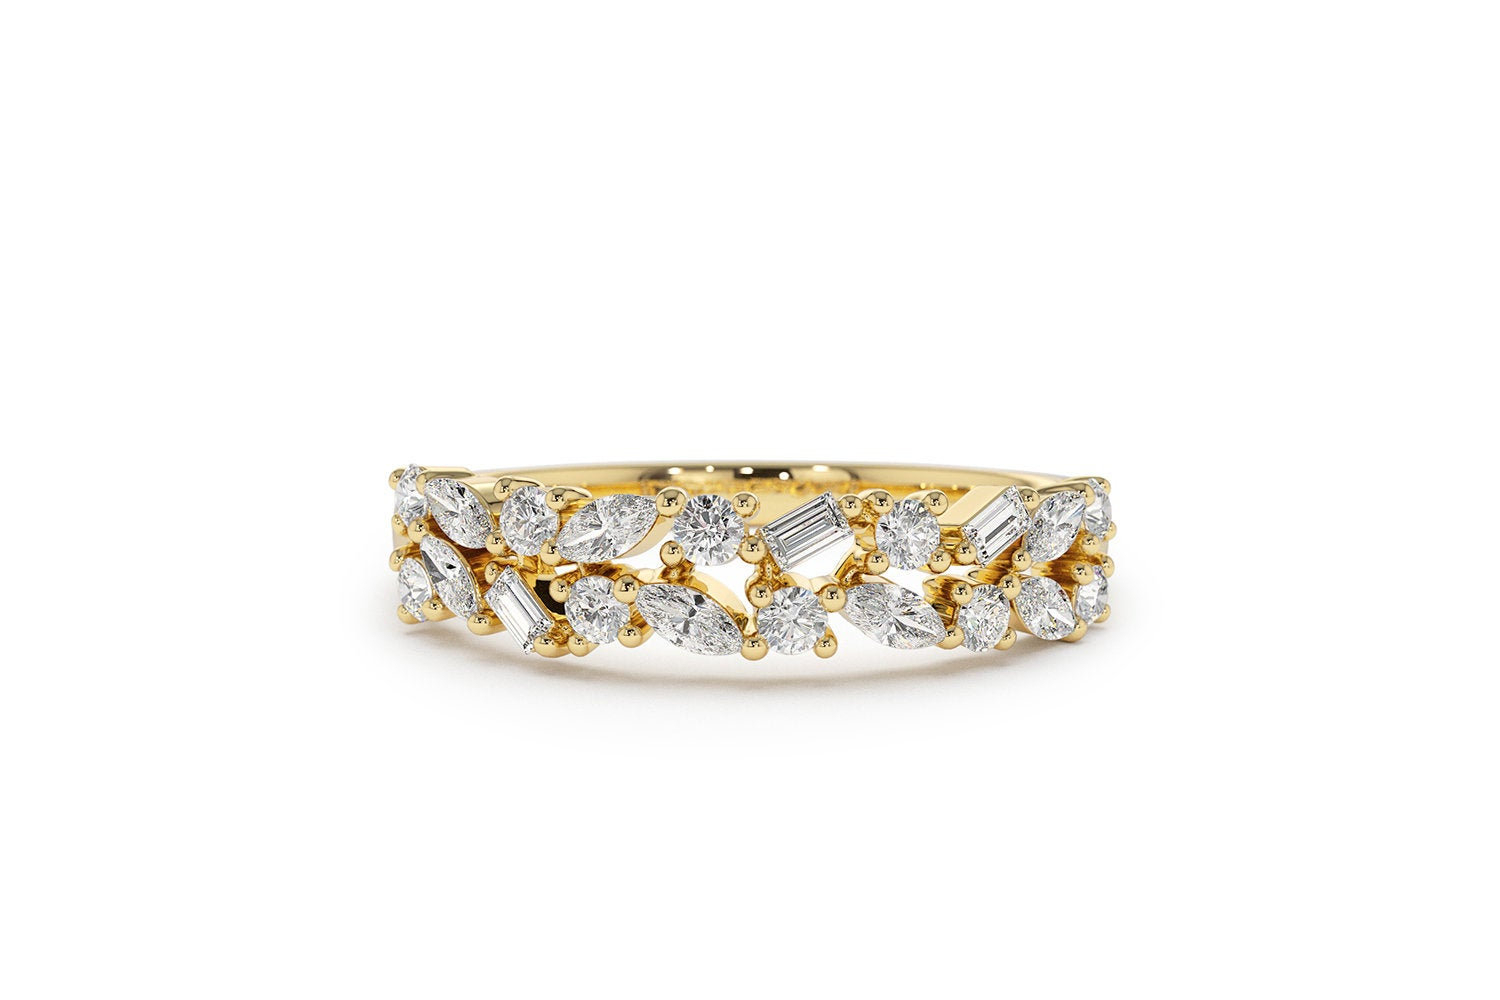 Marquise Baguette And Round Diamond Anniversary Band In 14K Gold / Ferkos Fine Jewelry In Newest Baguette And Round Diamond Alternating Multi Row Anniversary Bands In White Gold (Gallery 21 of 25)